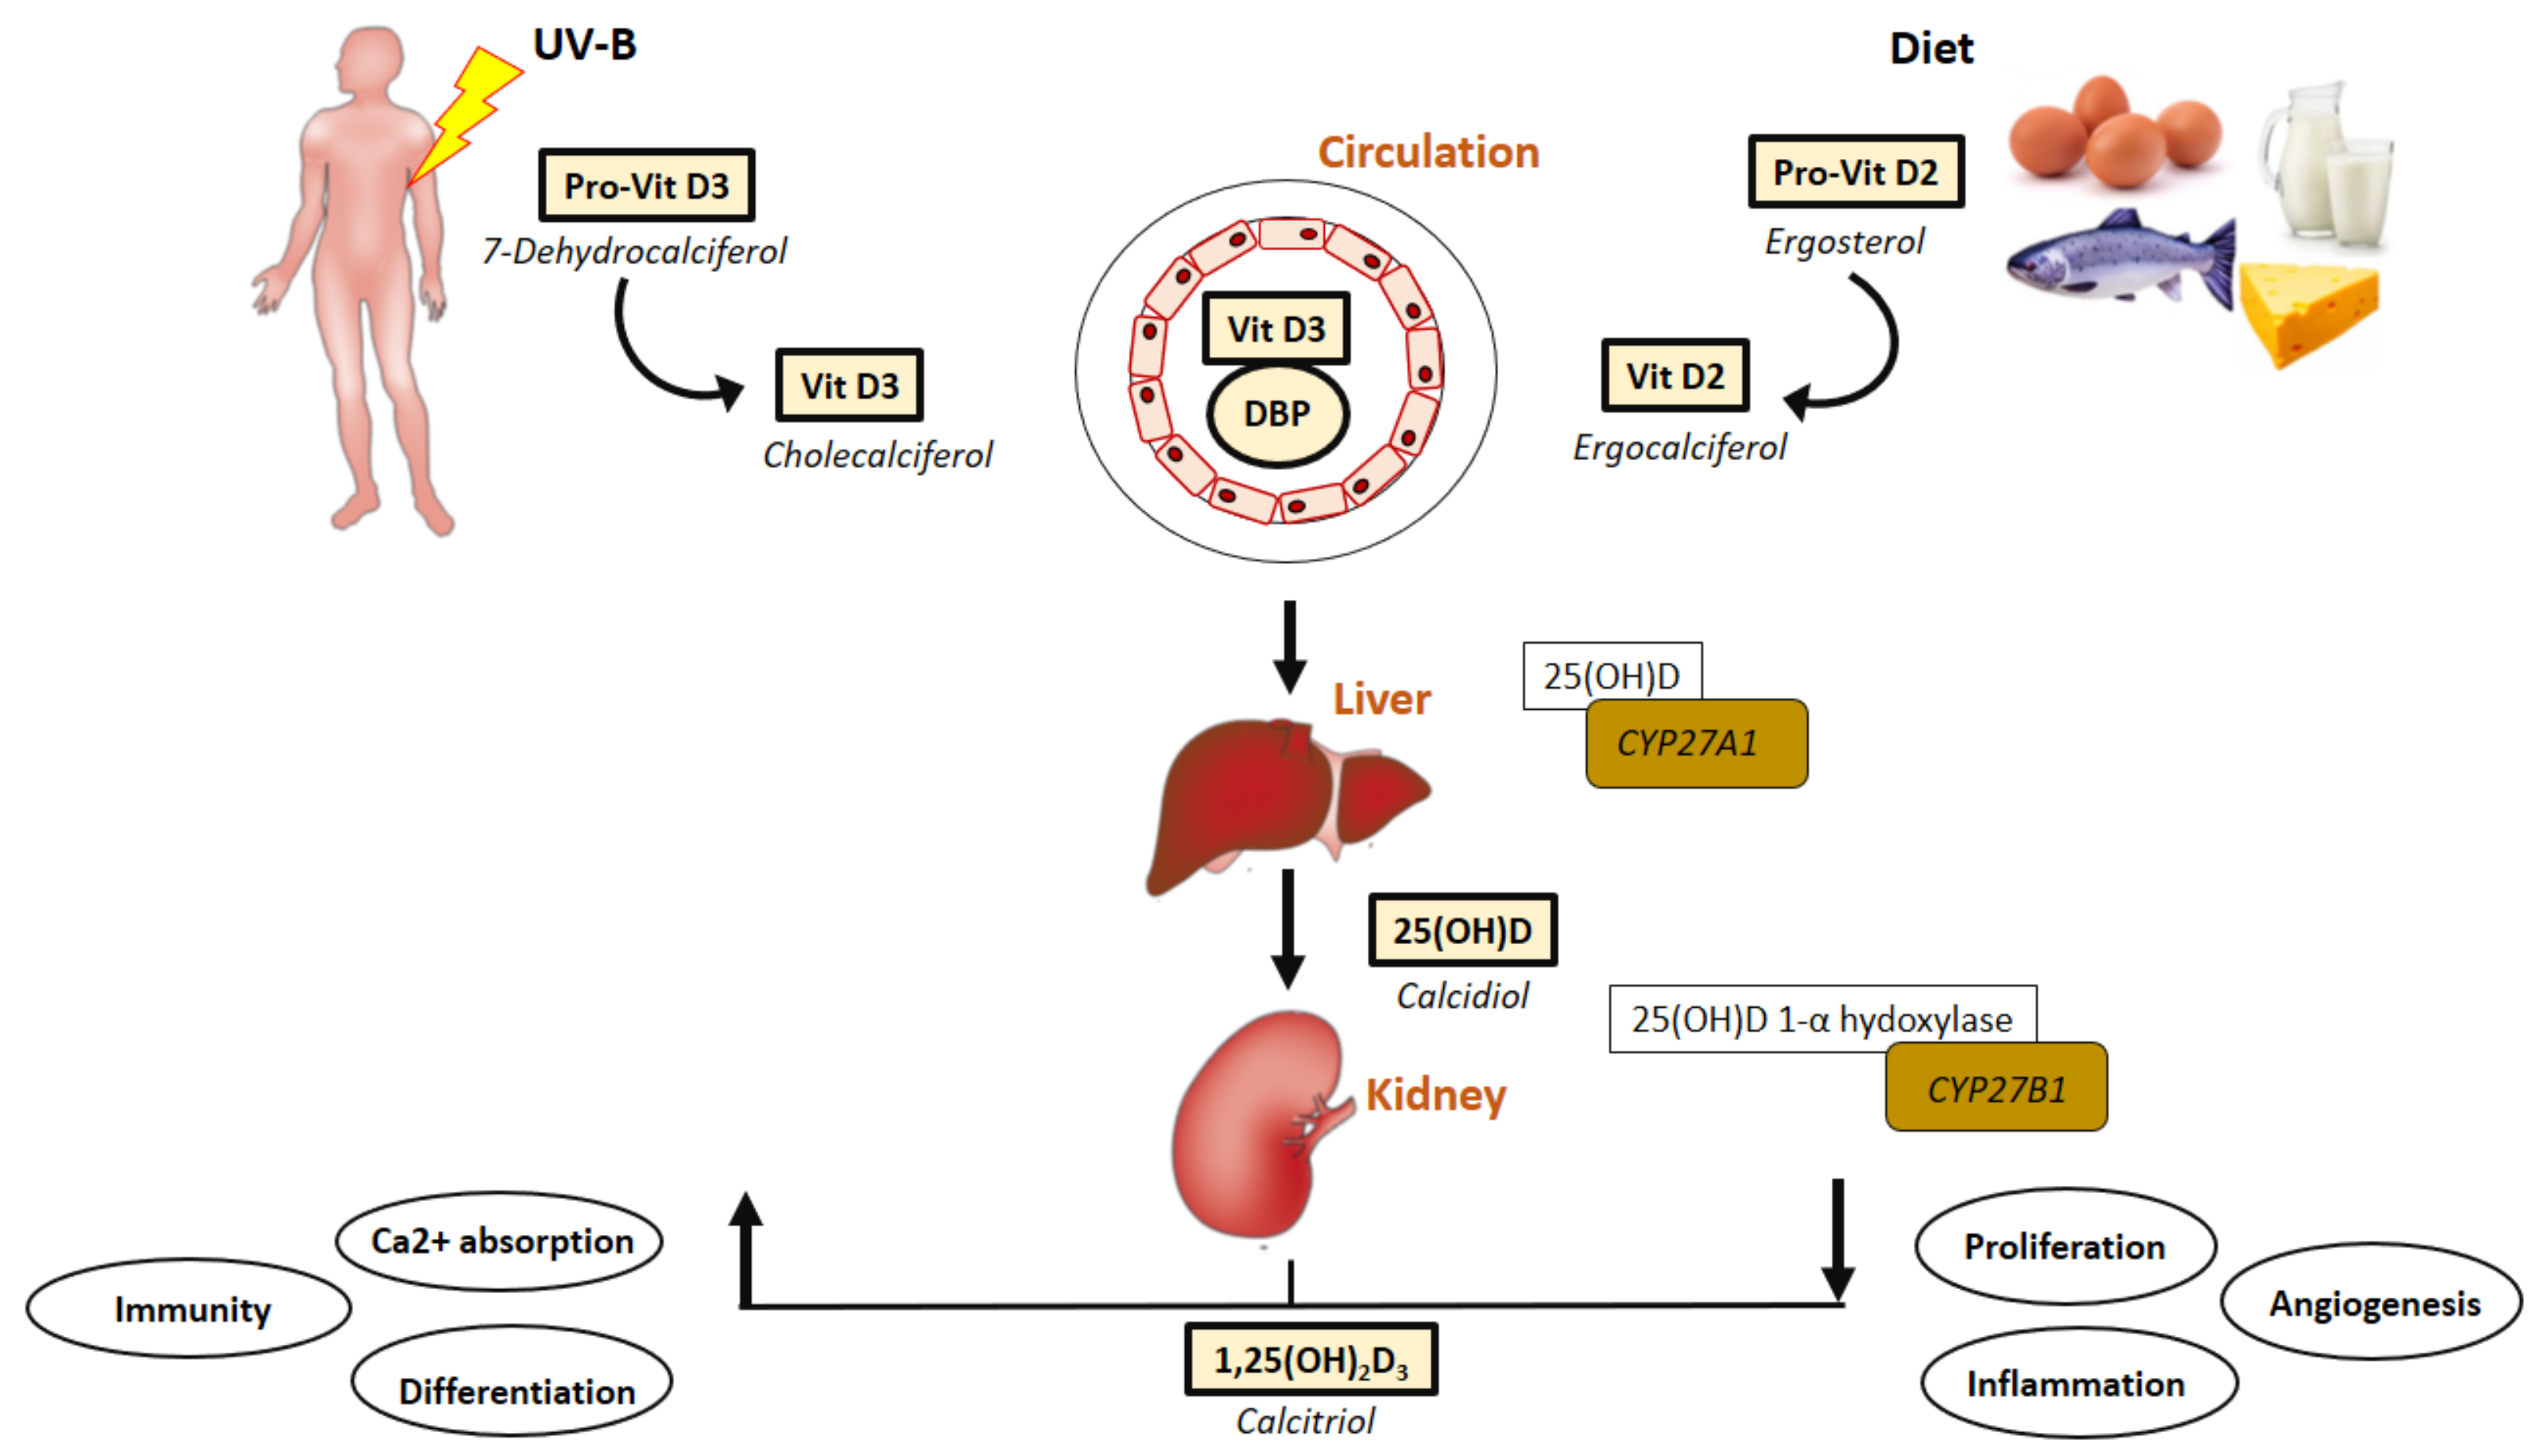 Ijms Free Full Text Vitamin D As A Protector Of Arterial Health Potential Role In Peripheral Arterial Disease Formation Html